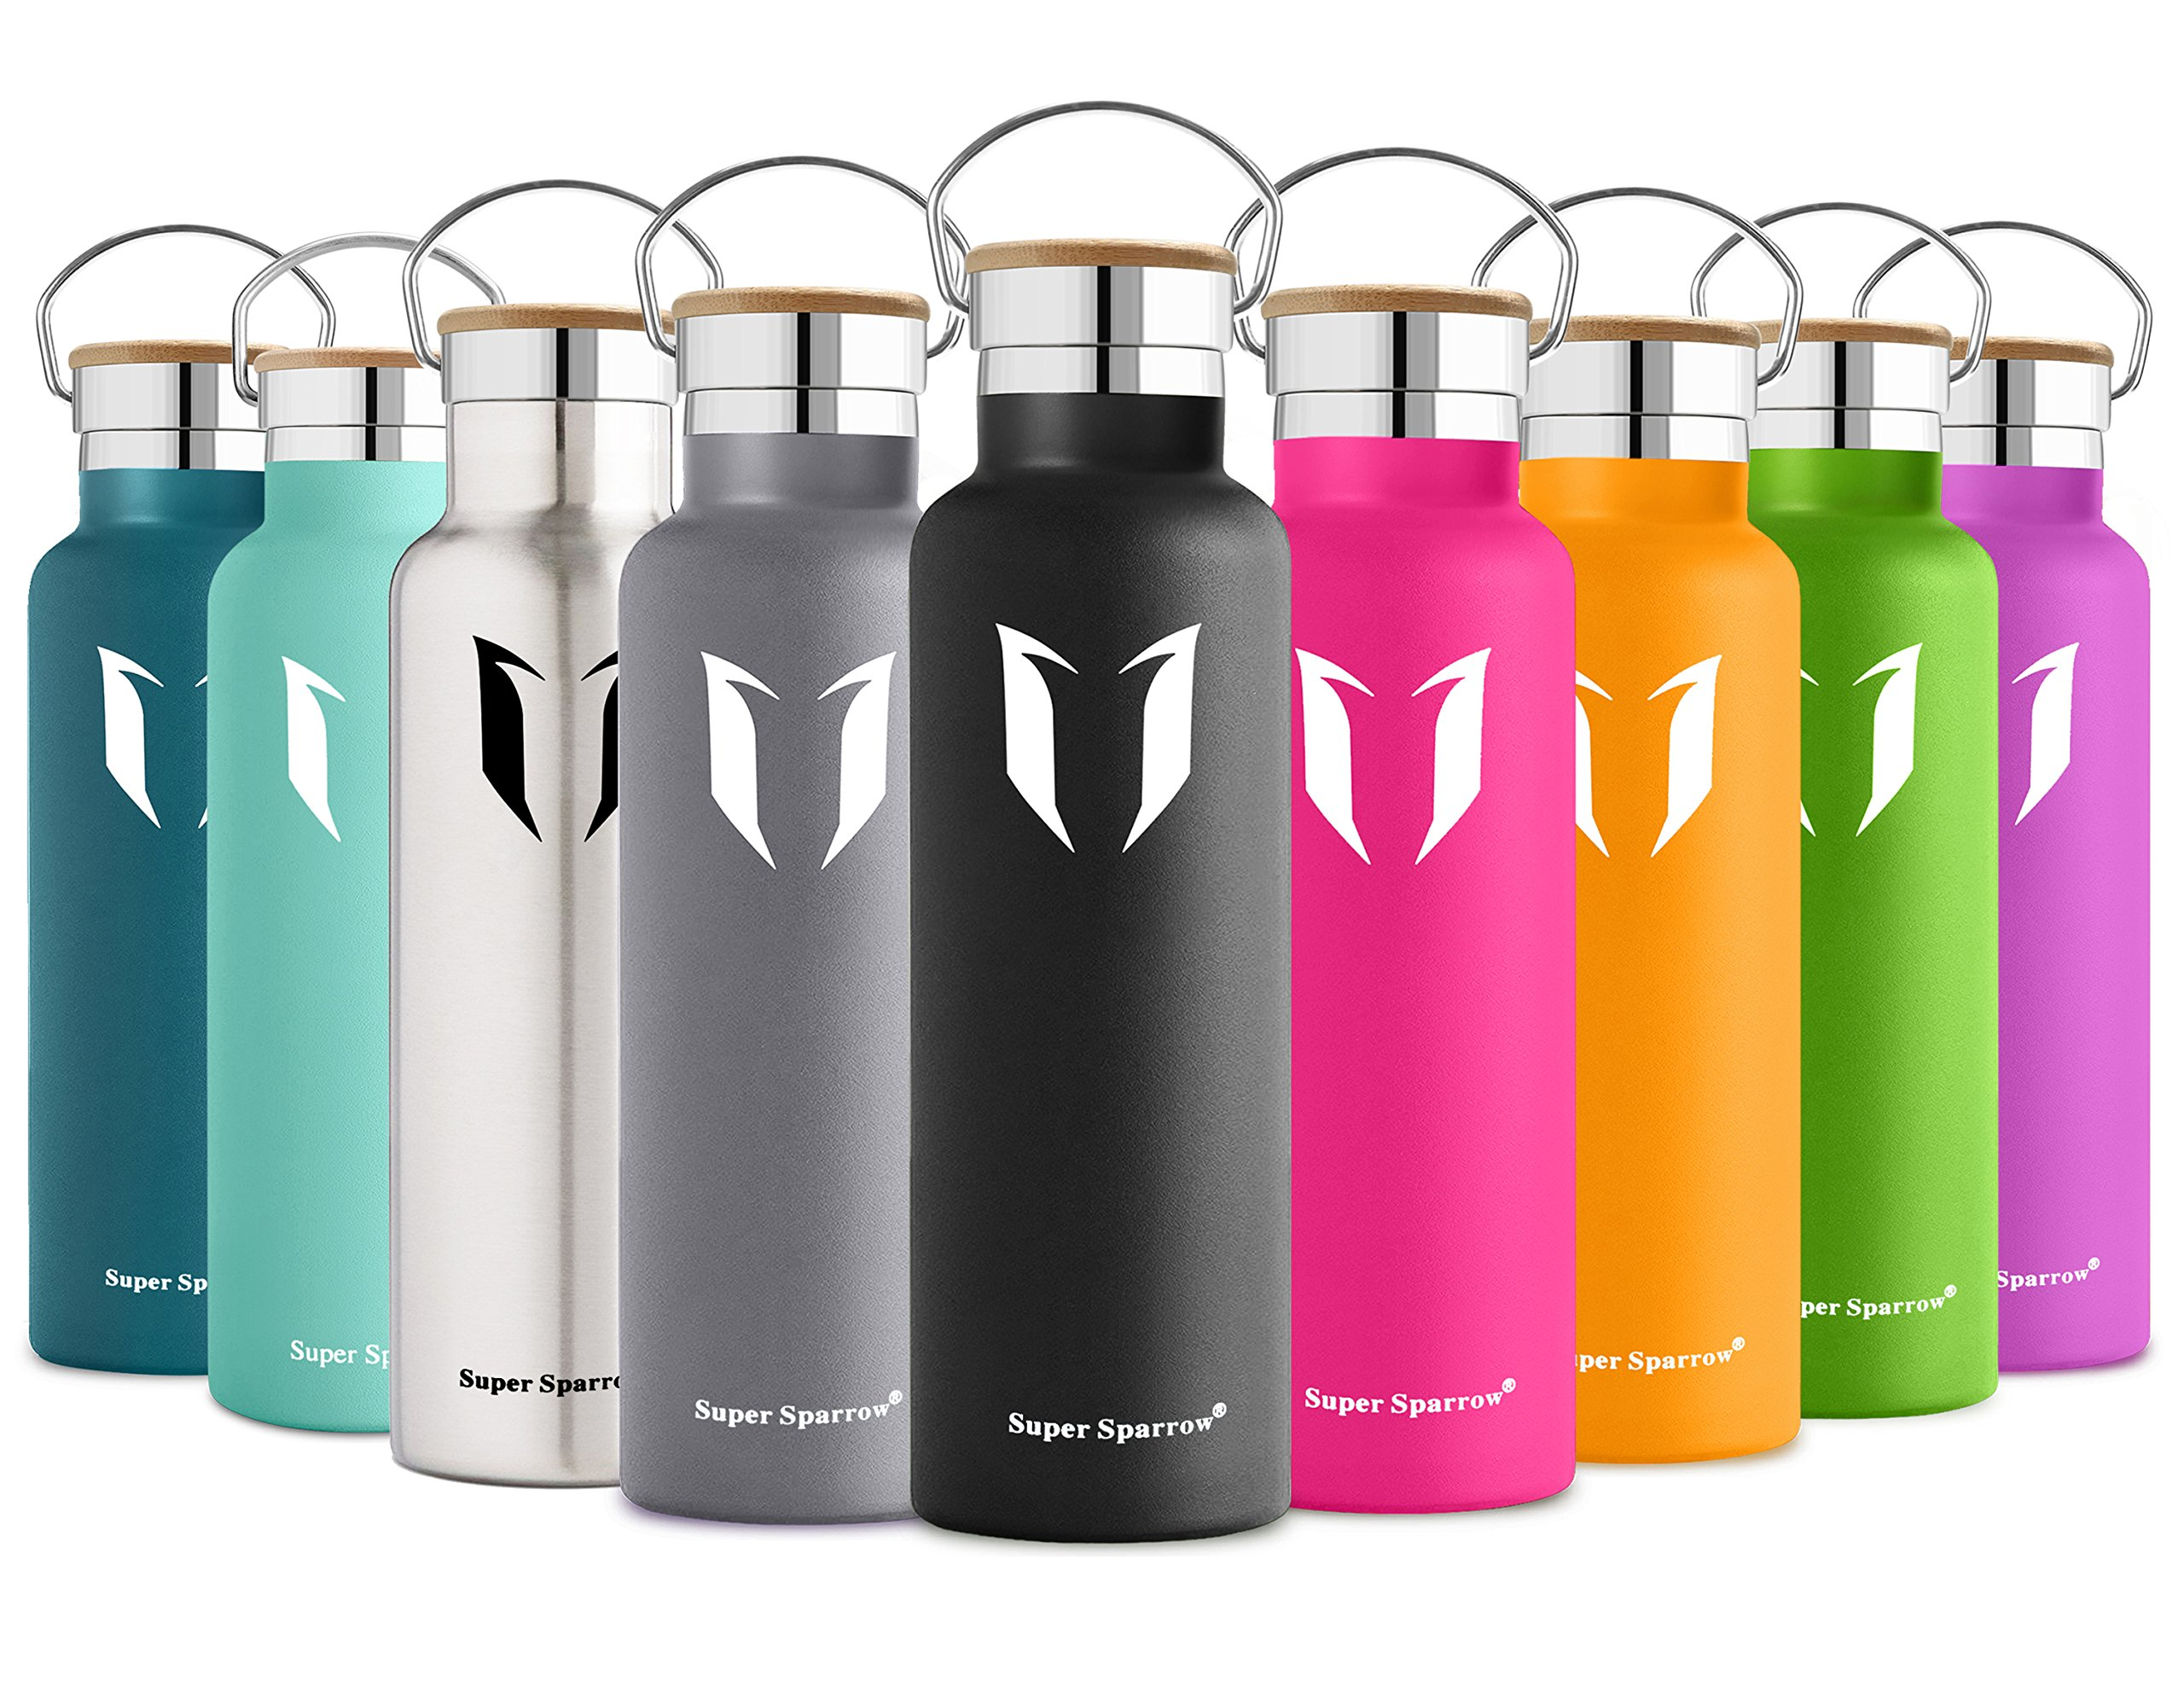 Super-Sparrow-Stainless-Steel-Vacuum-Insulated-Water-Bottle-Double-Wall-Design-Standard-Mouth-350ml-500ml-620ml-750ml-1000ml-Non-Toxic-BPA-Free-Ideal-as-Sports-Bottle-2-Lids